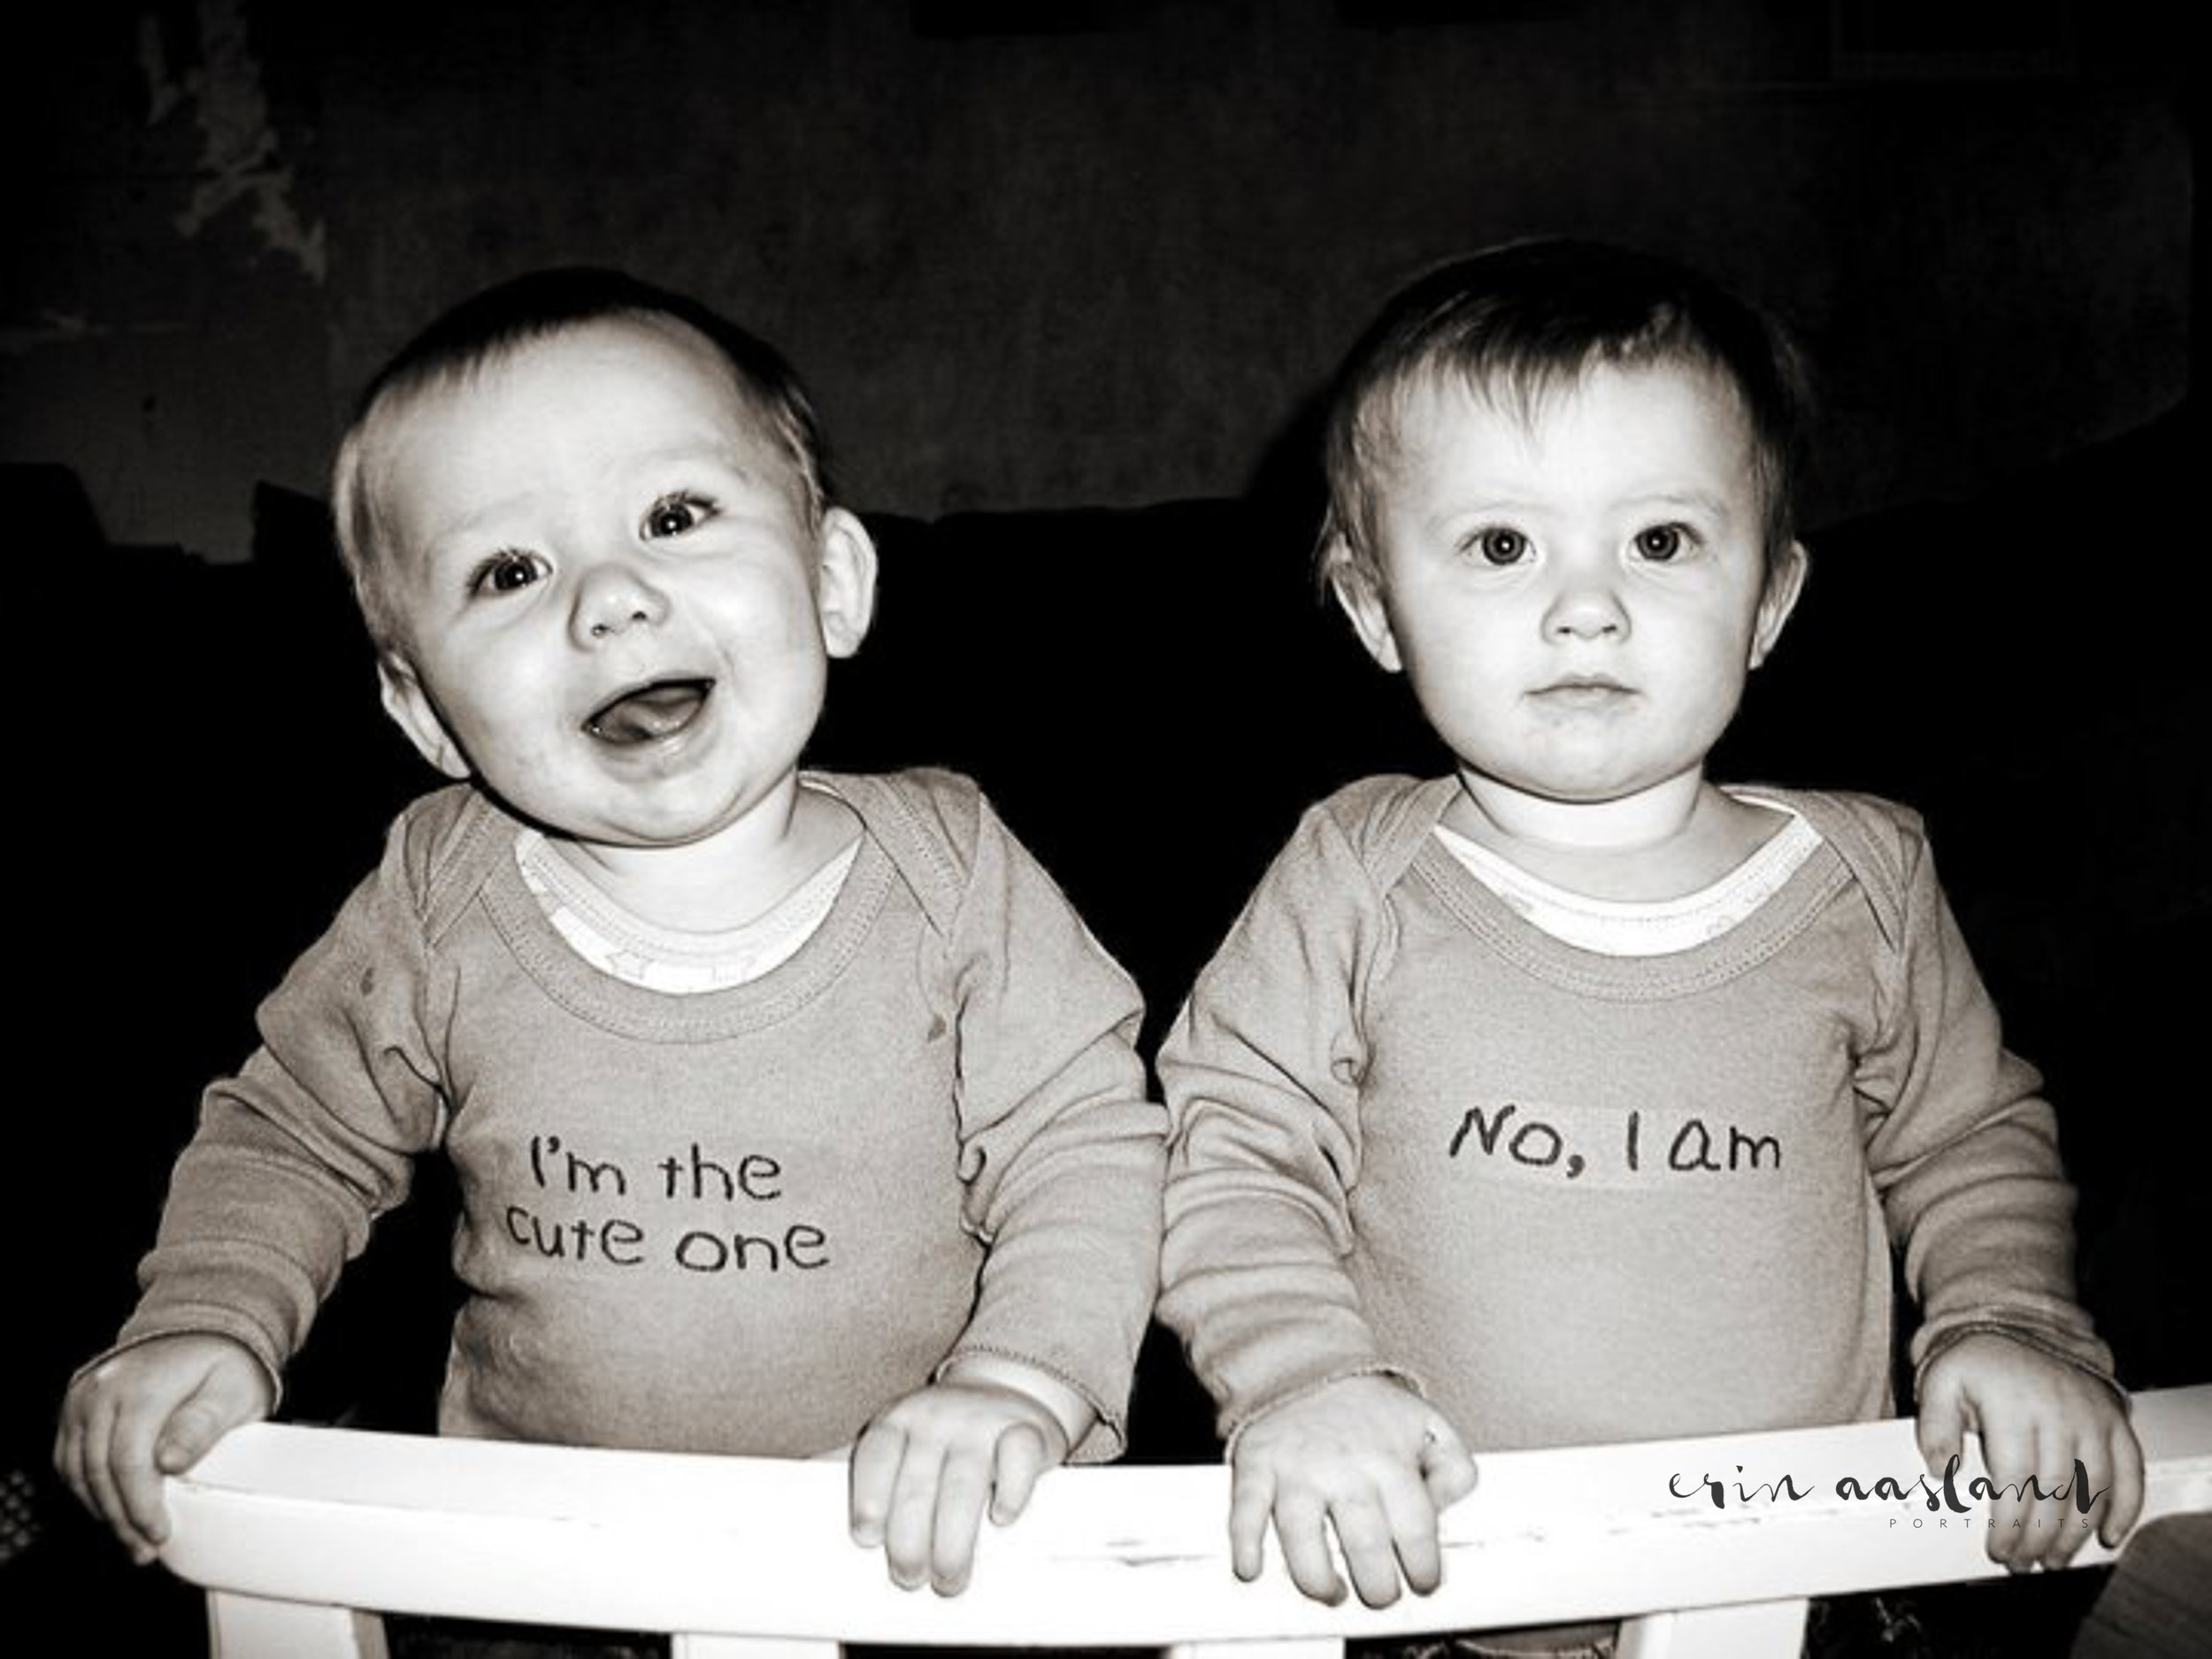 One of my favorite images of the twins because it completely sums them up.